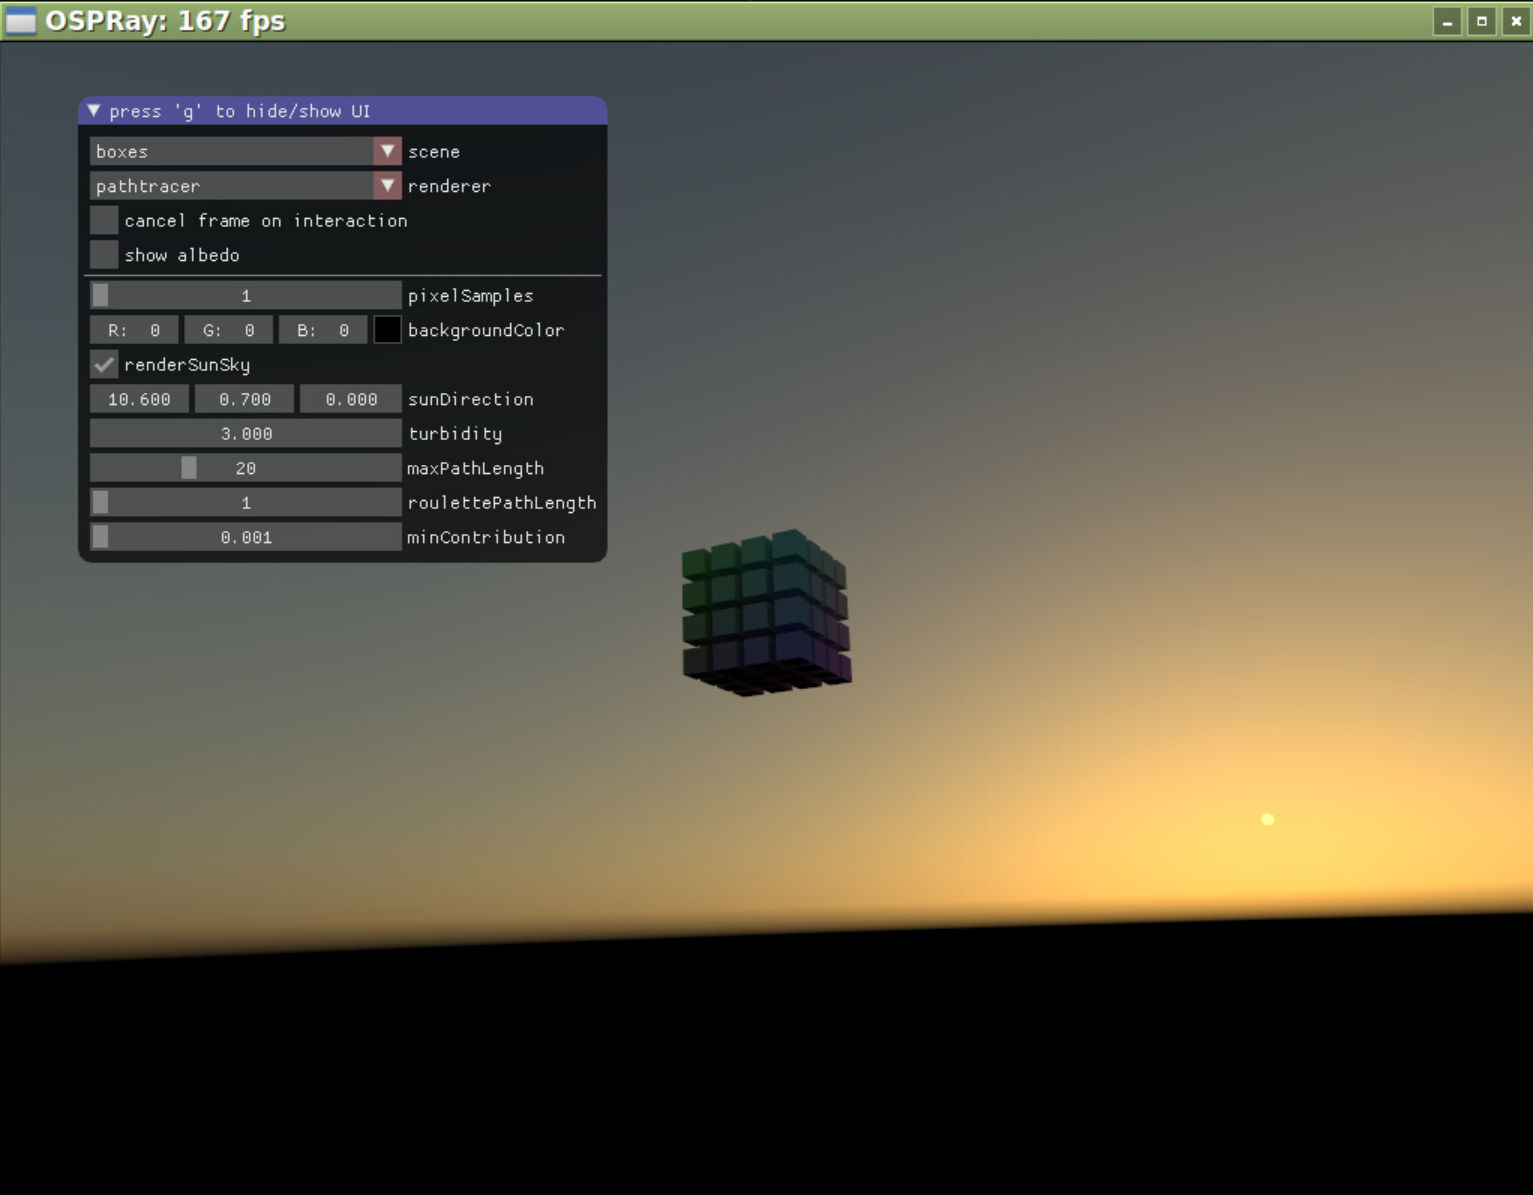 Rendering an evening sky with the renderSunSky option.